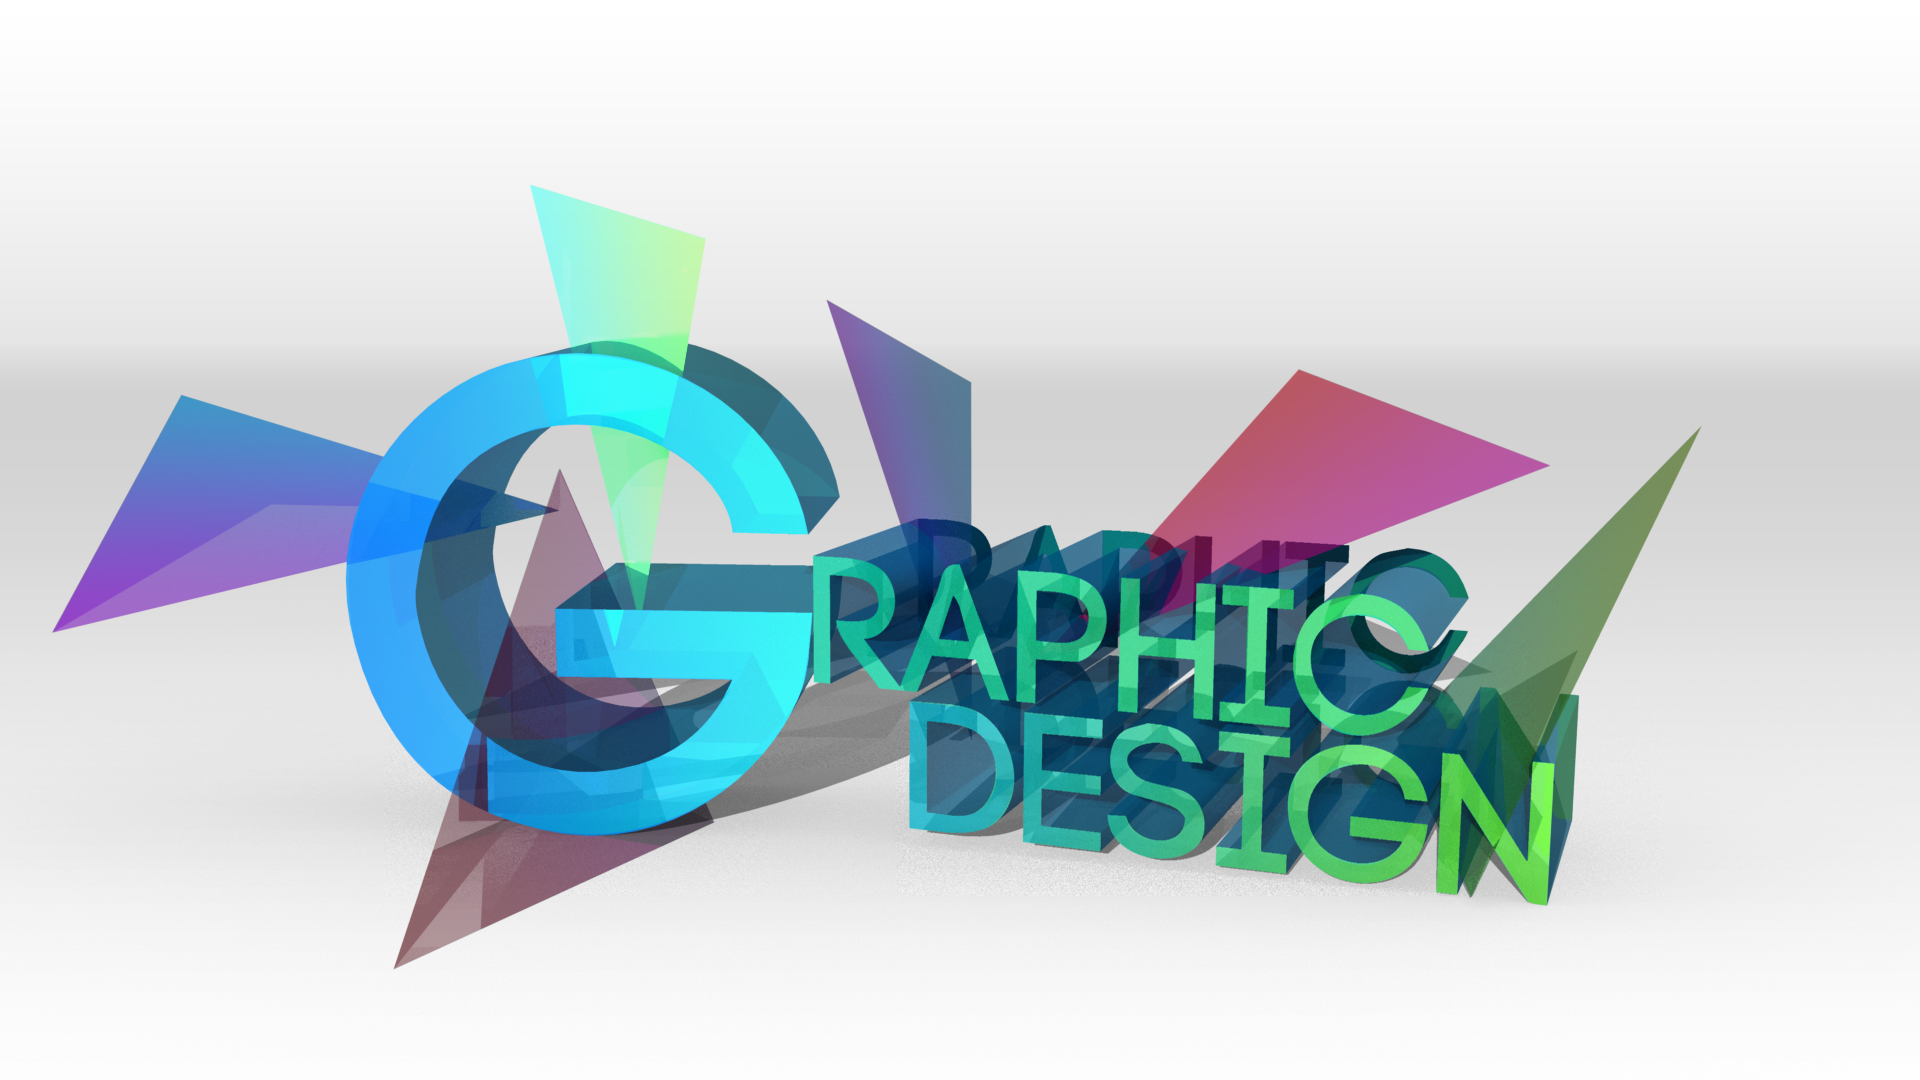 3d Graphic Design Text By Veritas Night On Deviantart